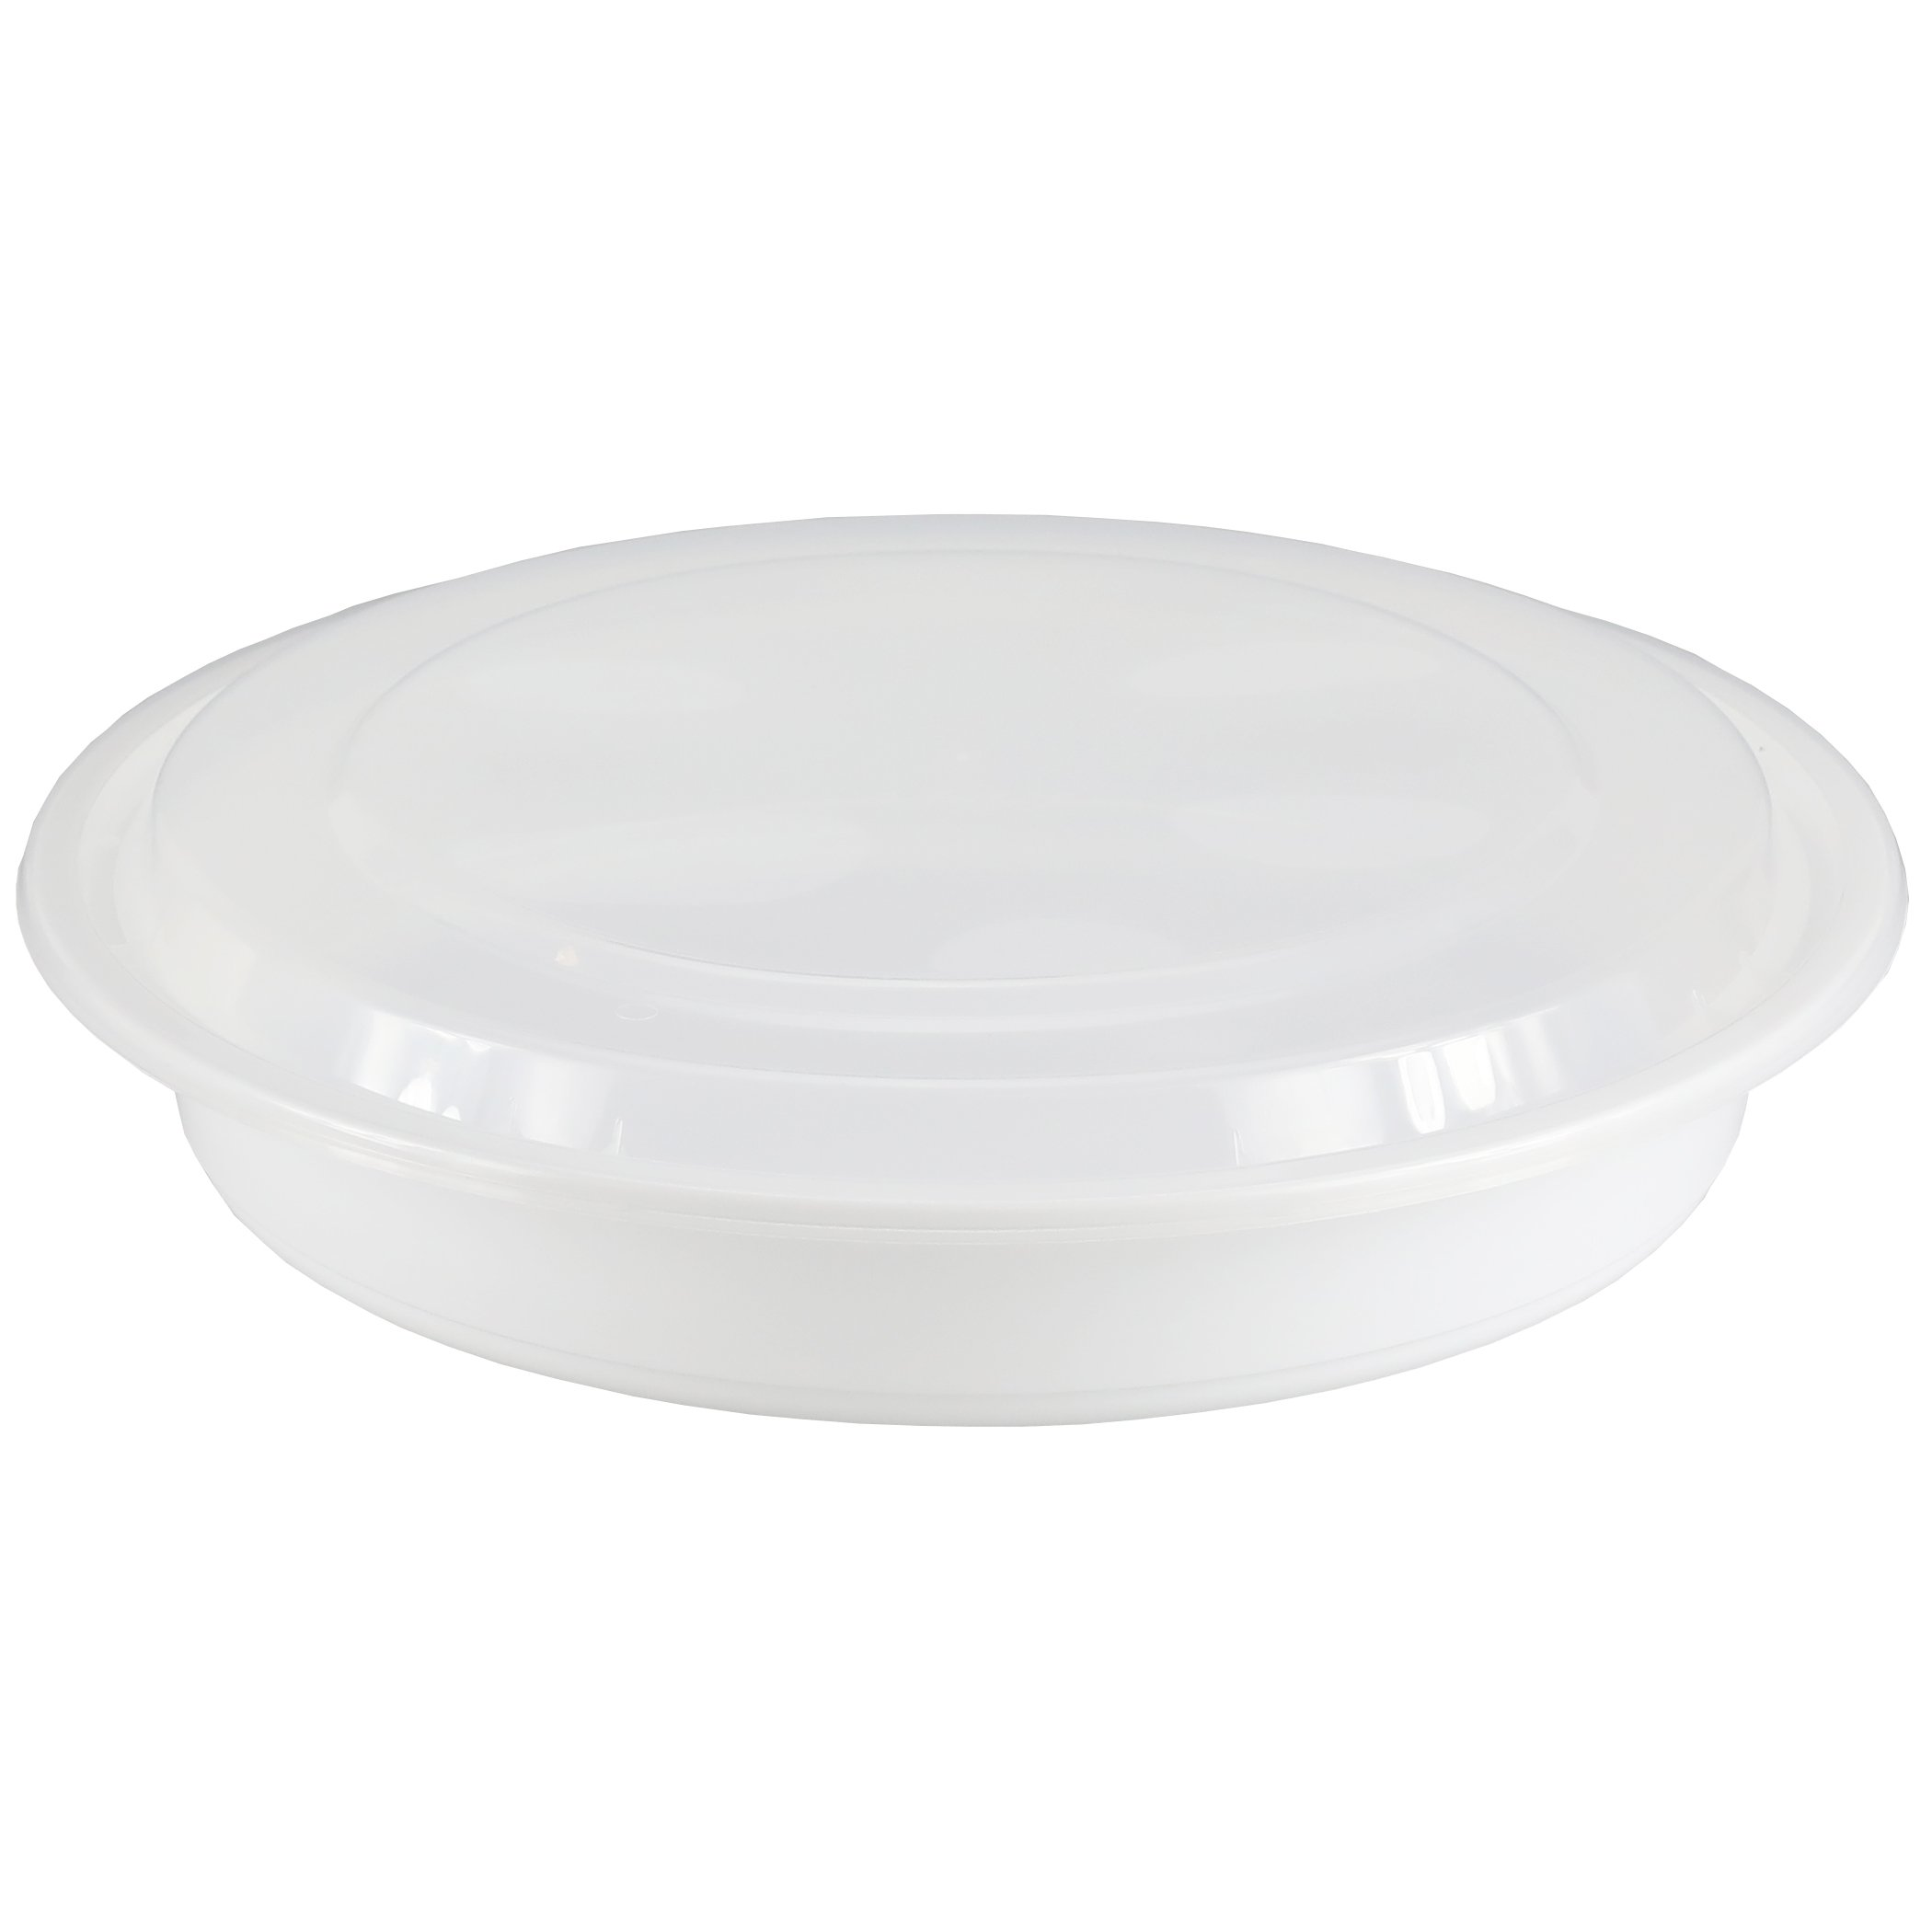 Simply Deliver 9-Inch Medium Round Container with Clear Lid, Microwavable, White, 150-Count